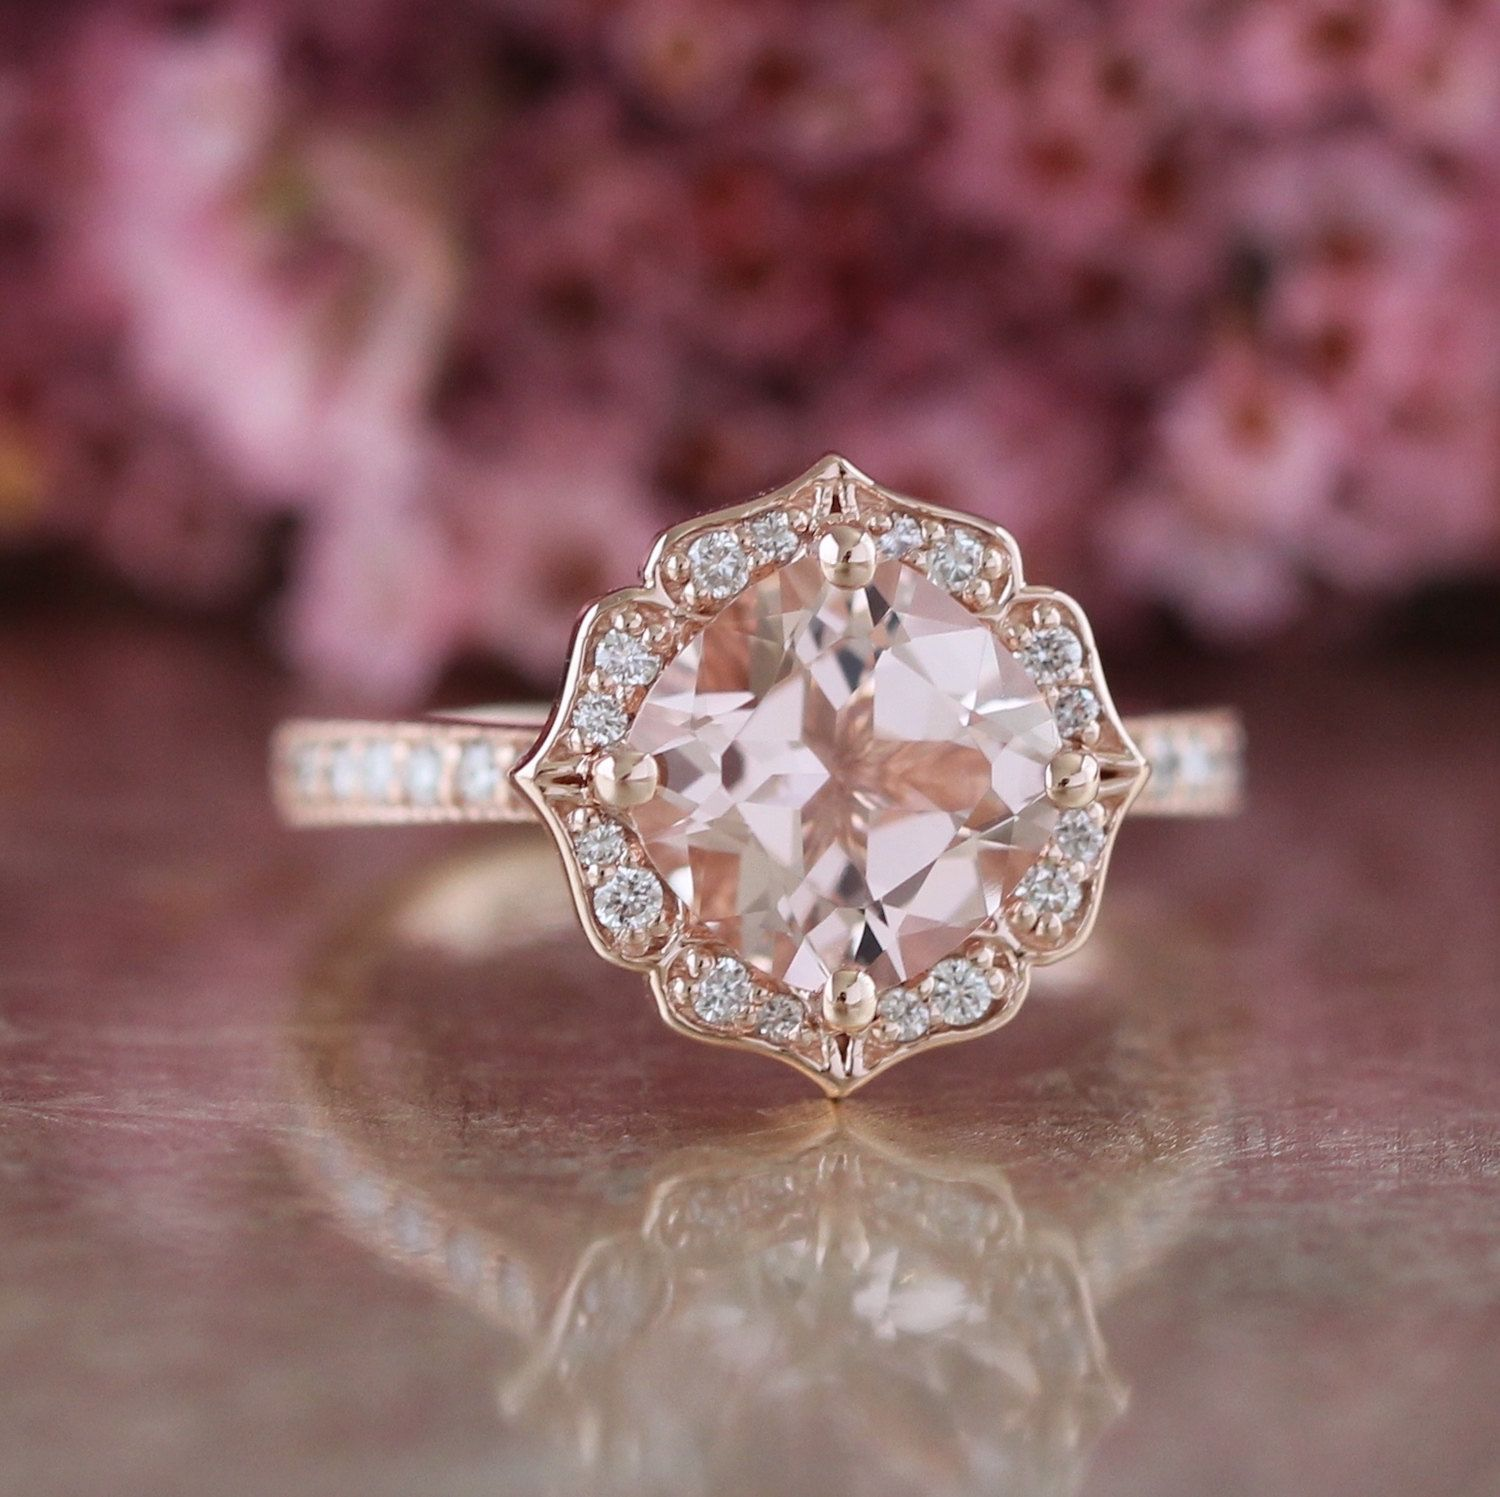 Morganite Rose Setting Design Clothes Pinterest Ring And